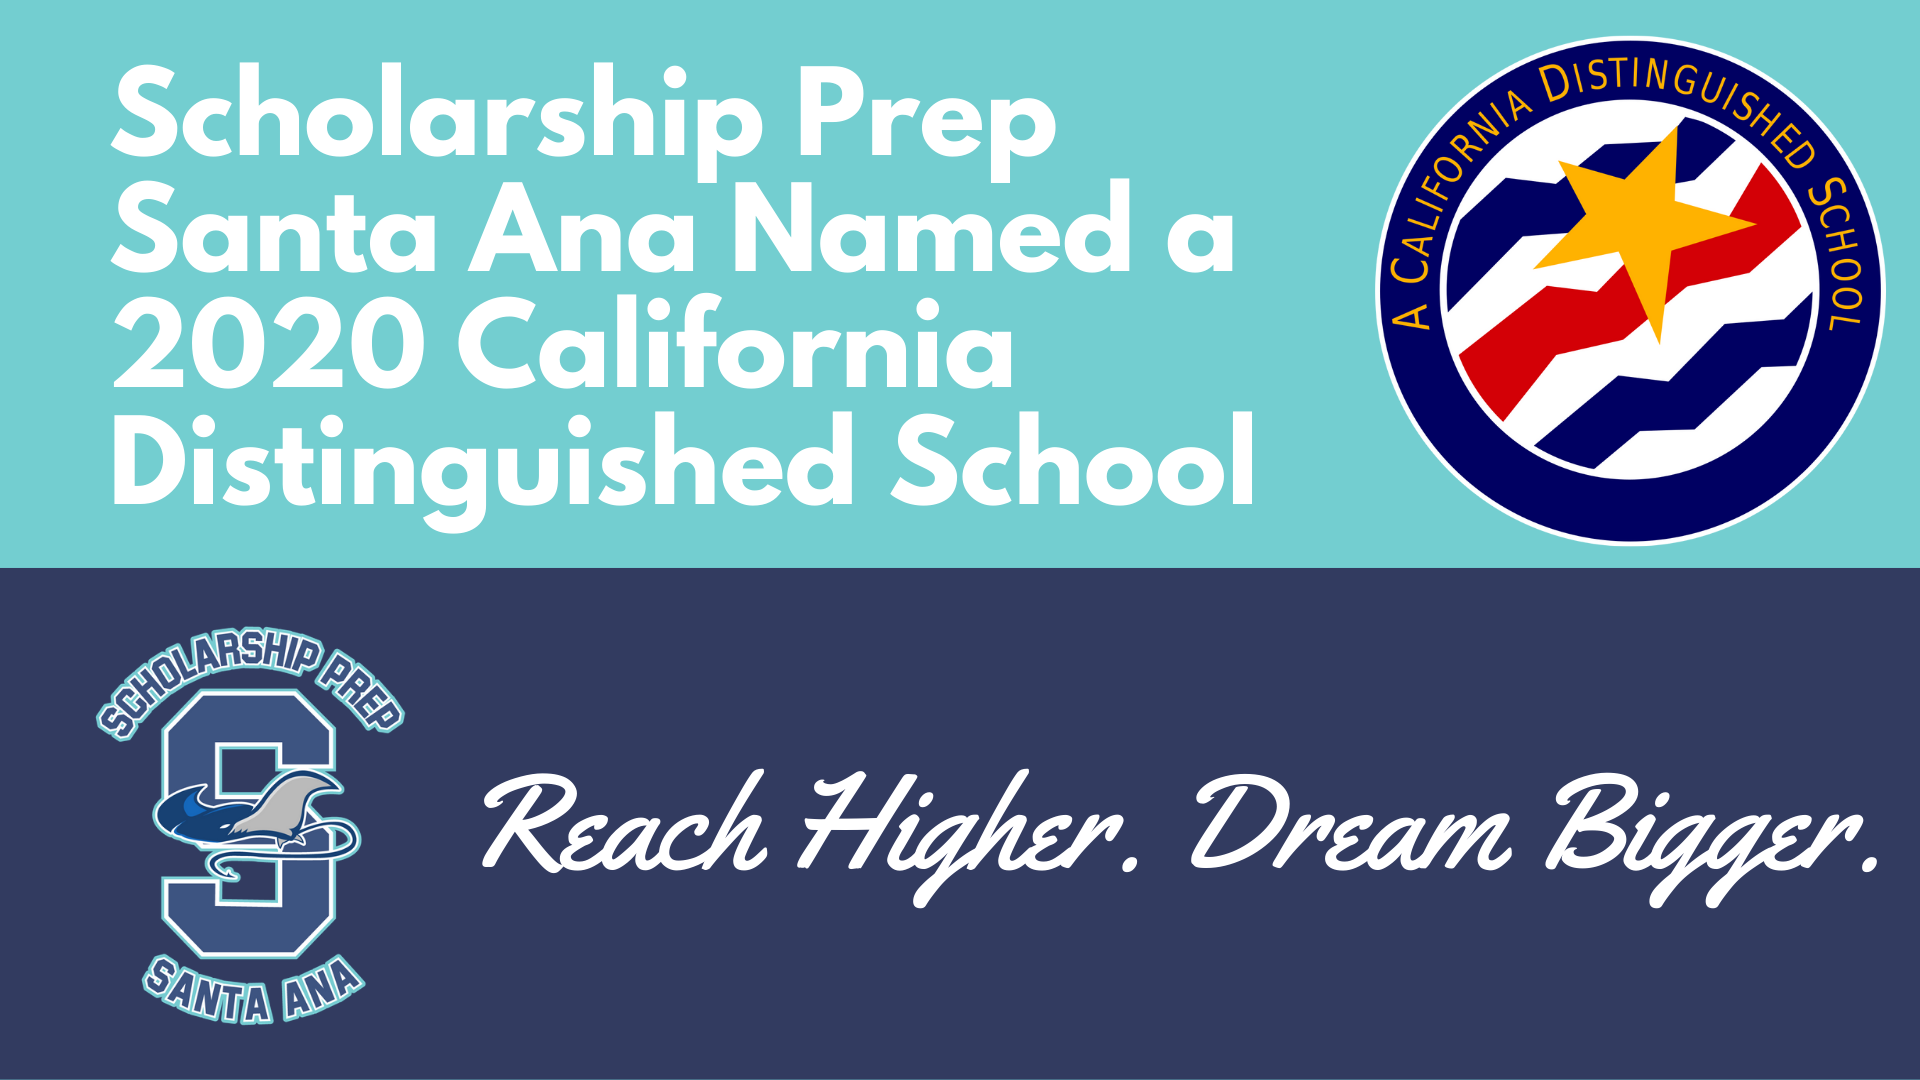 Scholarship Prep Santa Ana Named a  2020 California Distinguished School